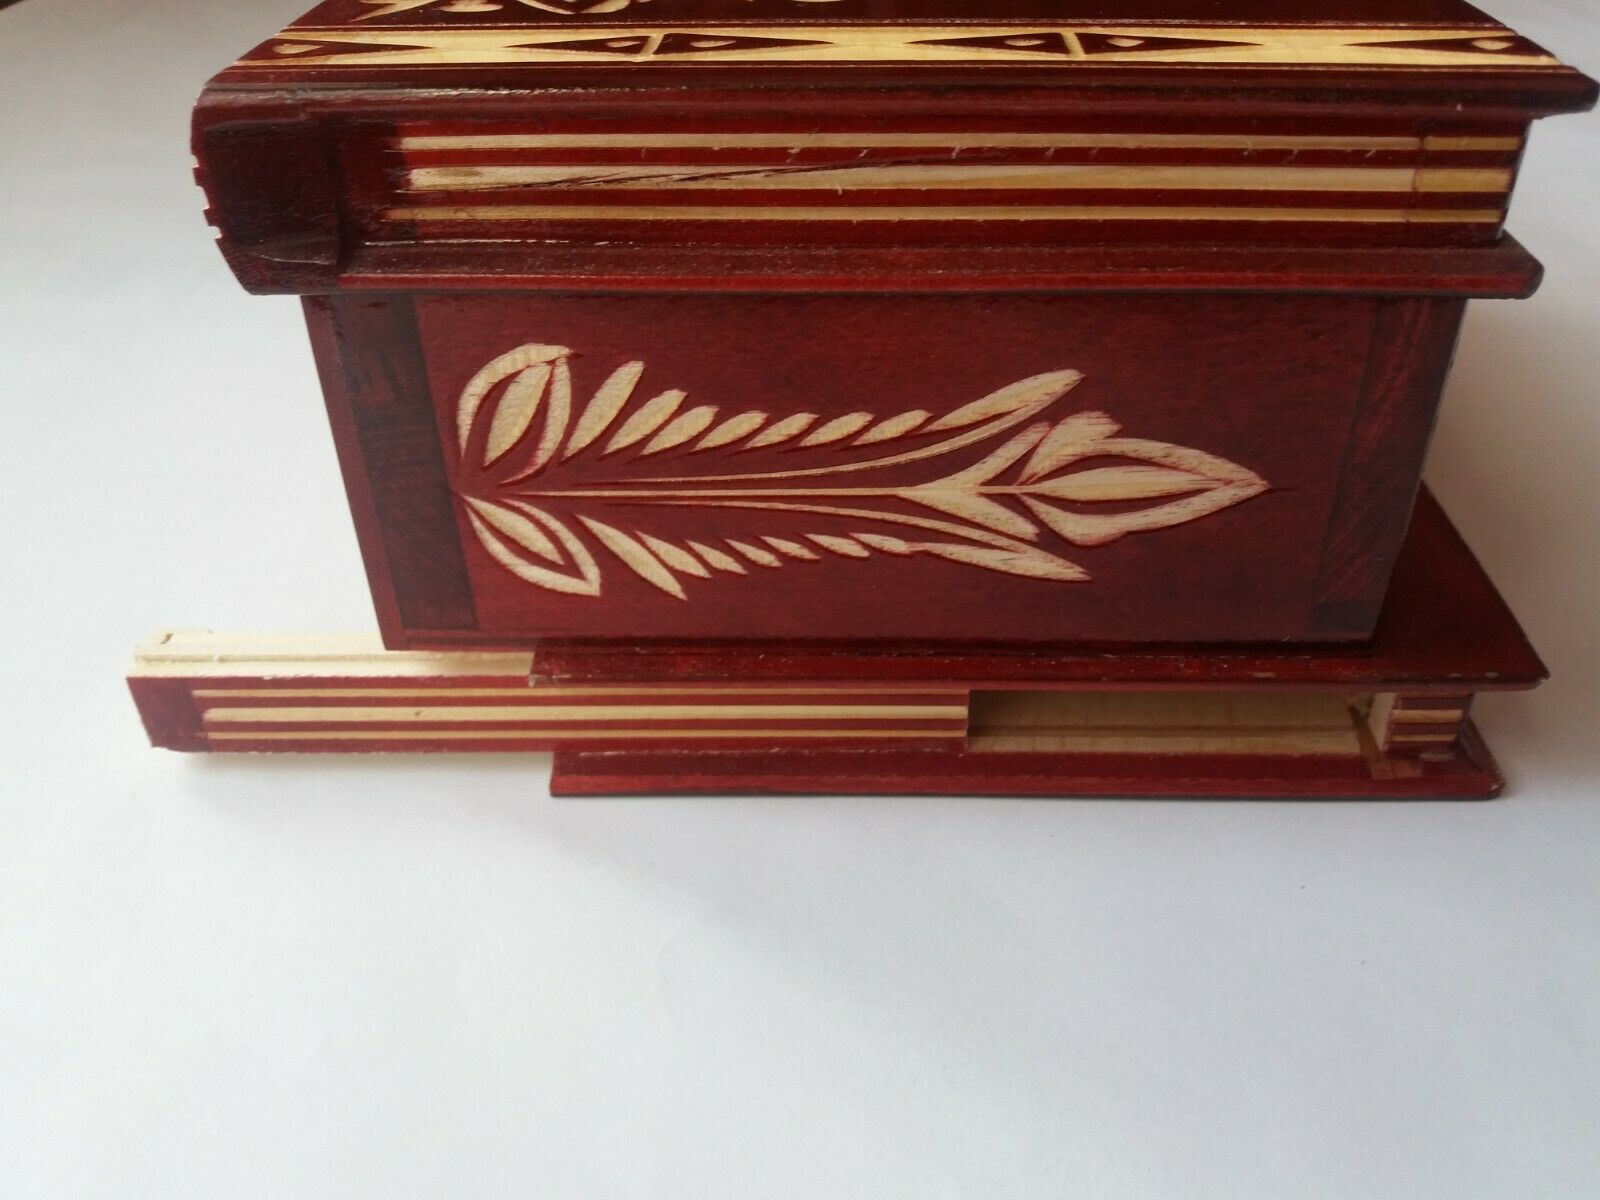 Big huge rot wooden puzzle box box box with secret opening storage for jewelry Gold ec32d4